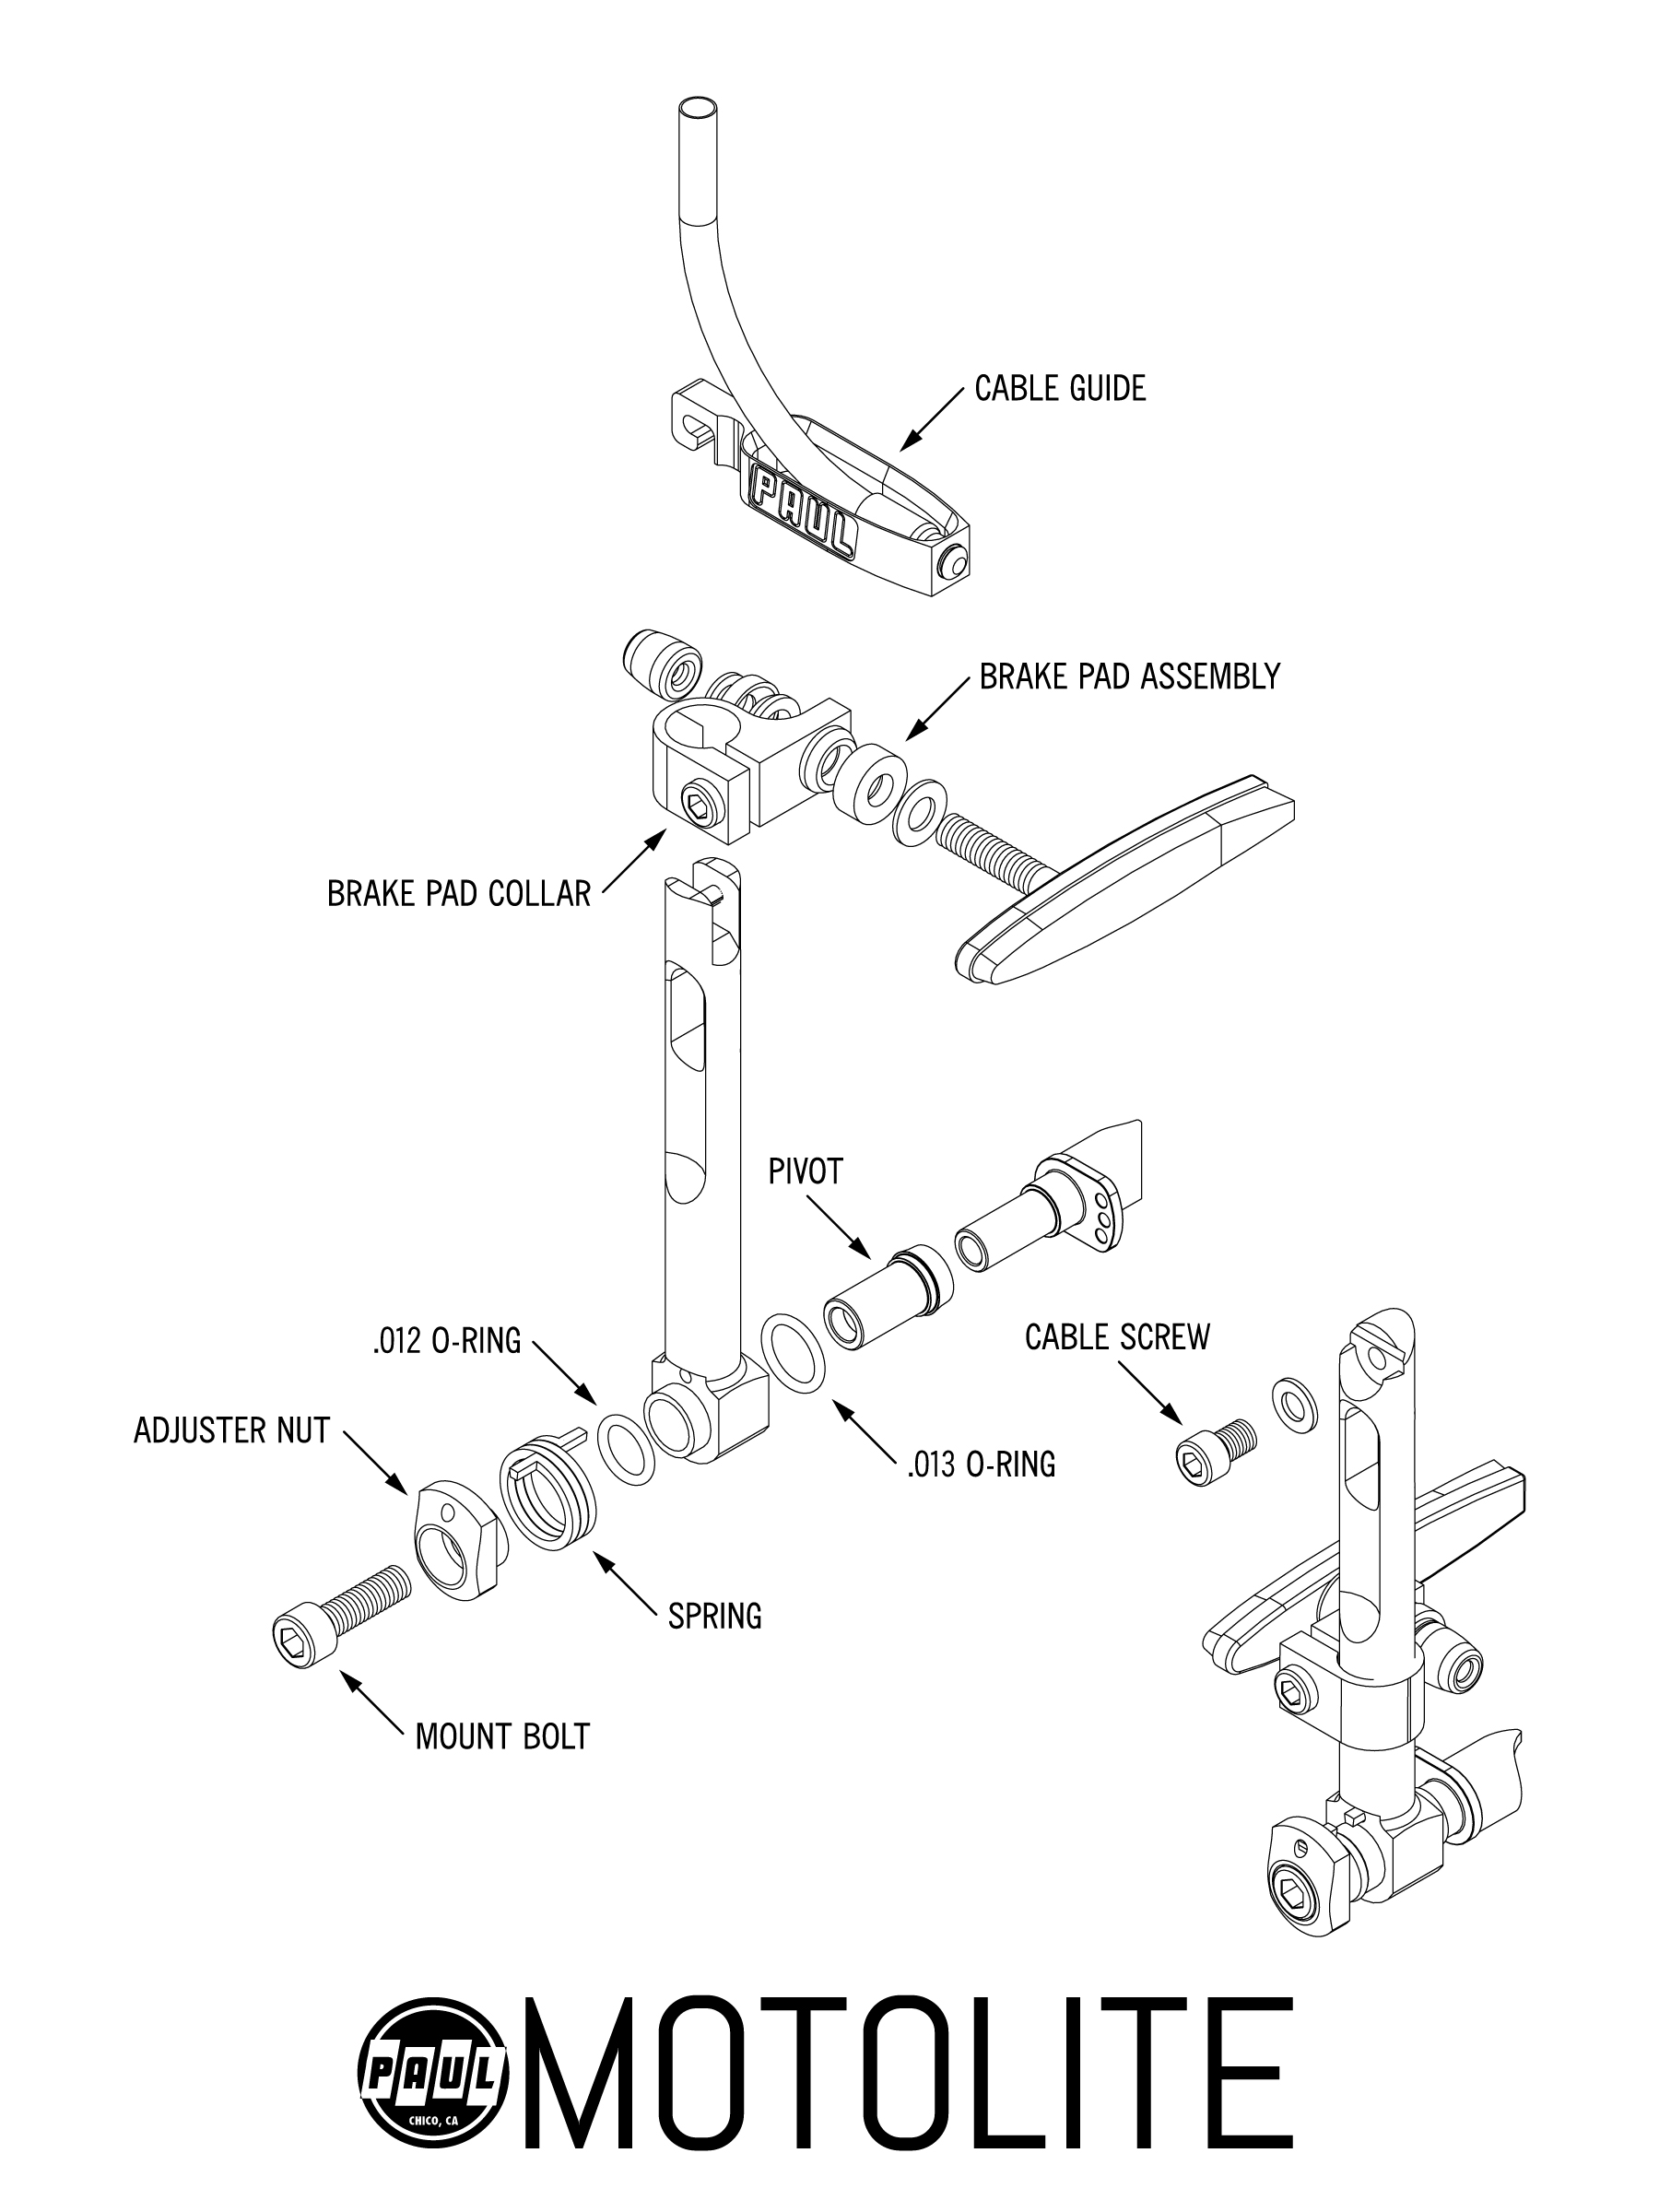 Exploded Assembly Drawing